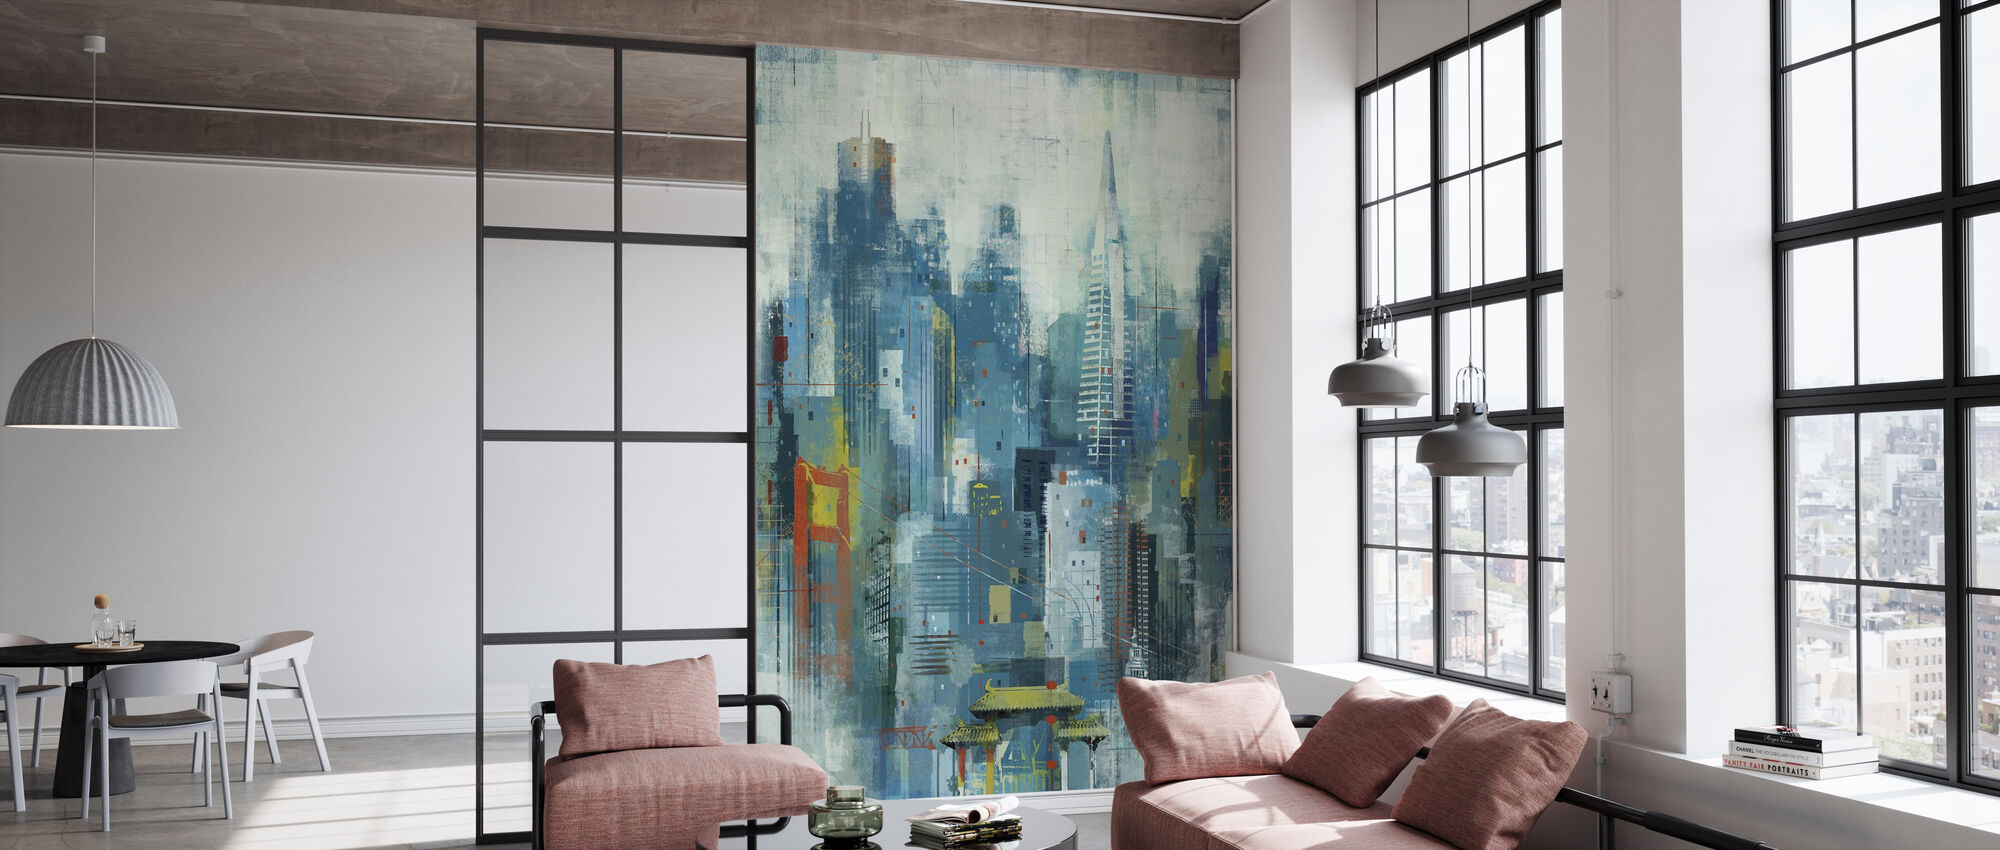 San Francisco Skyline Art - Wallpaper - Office